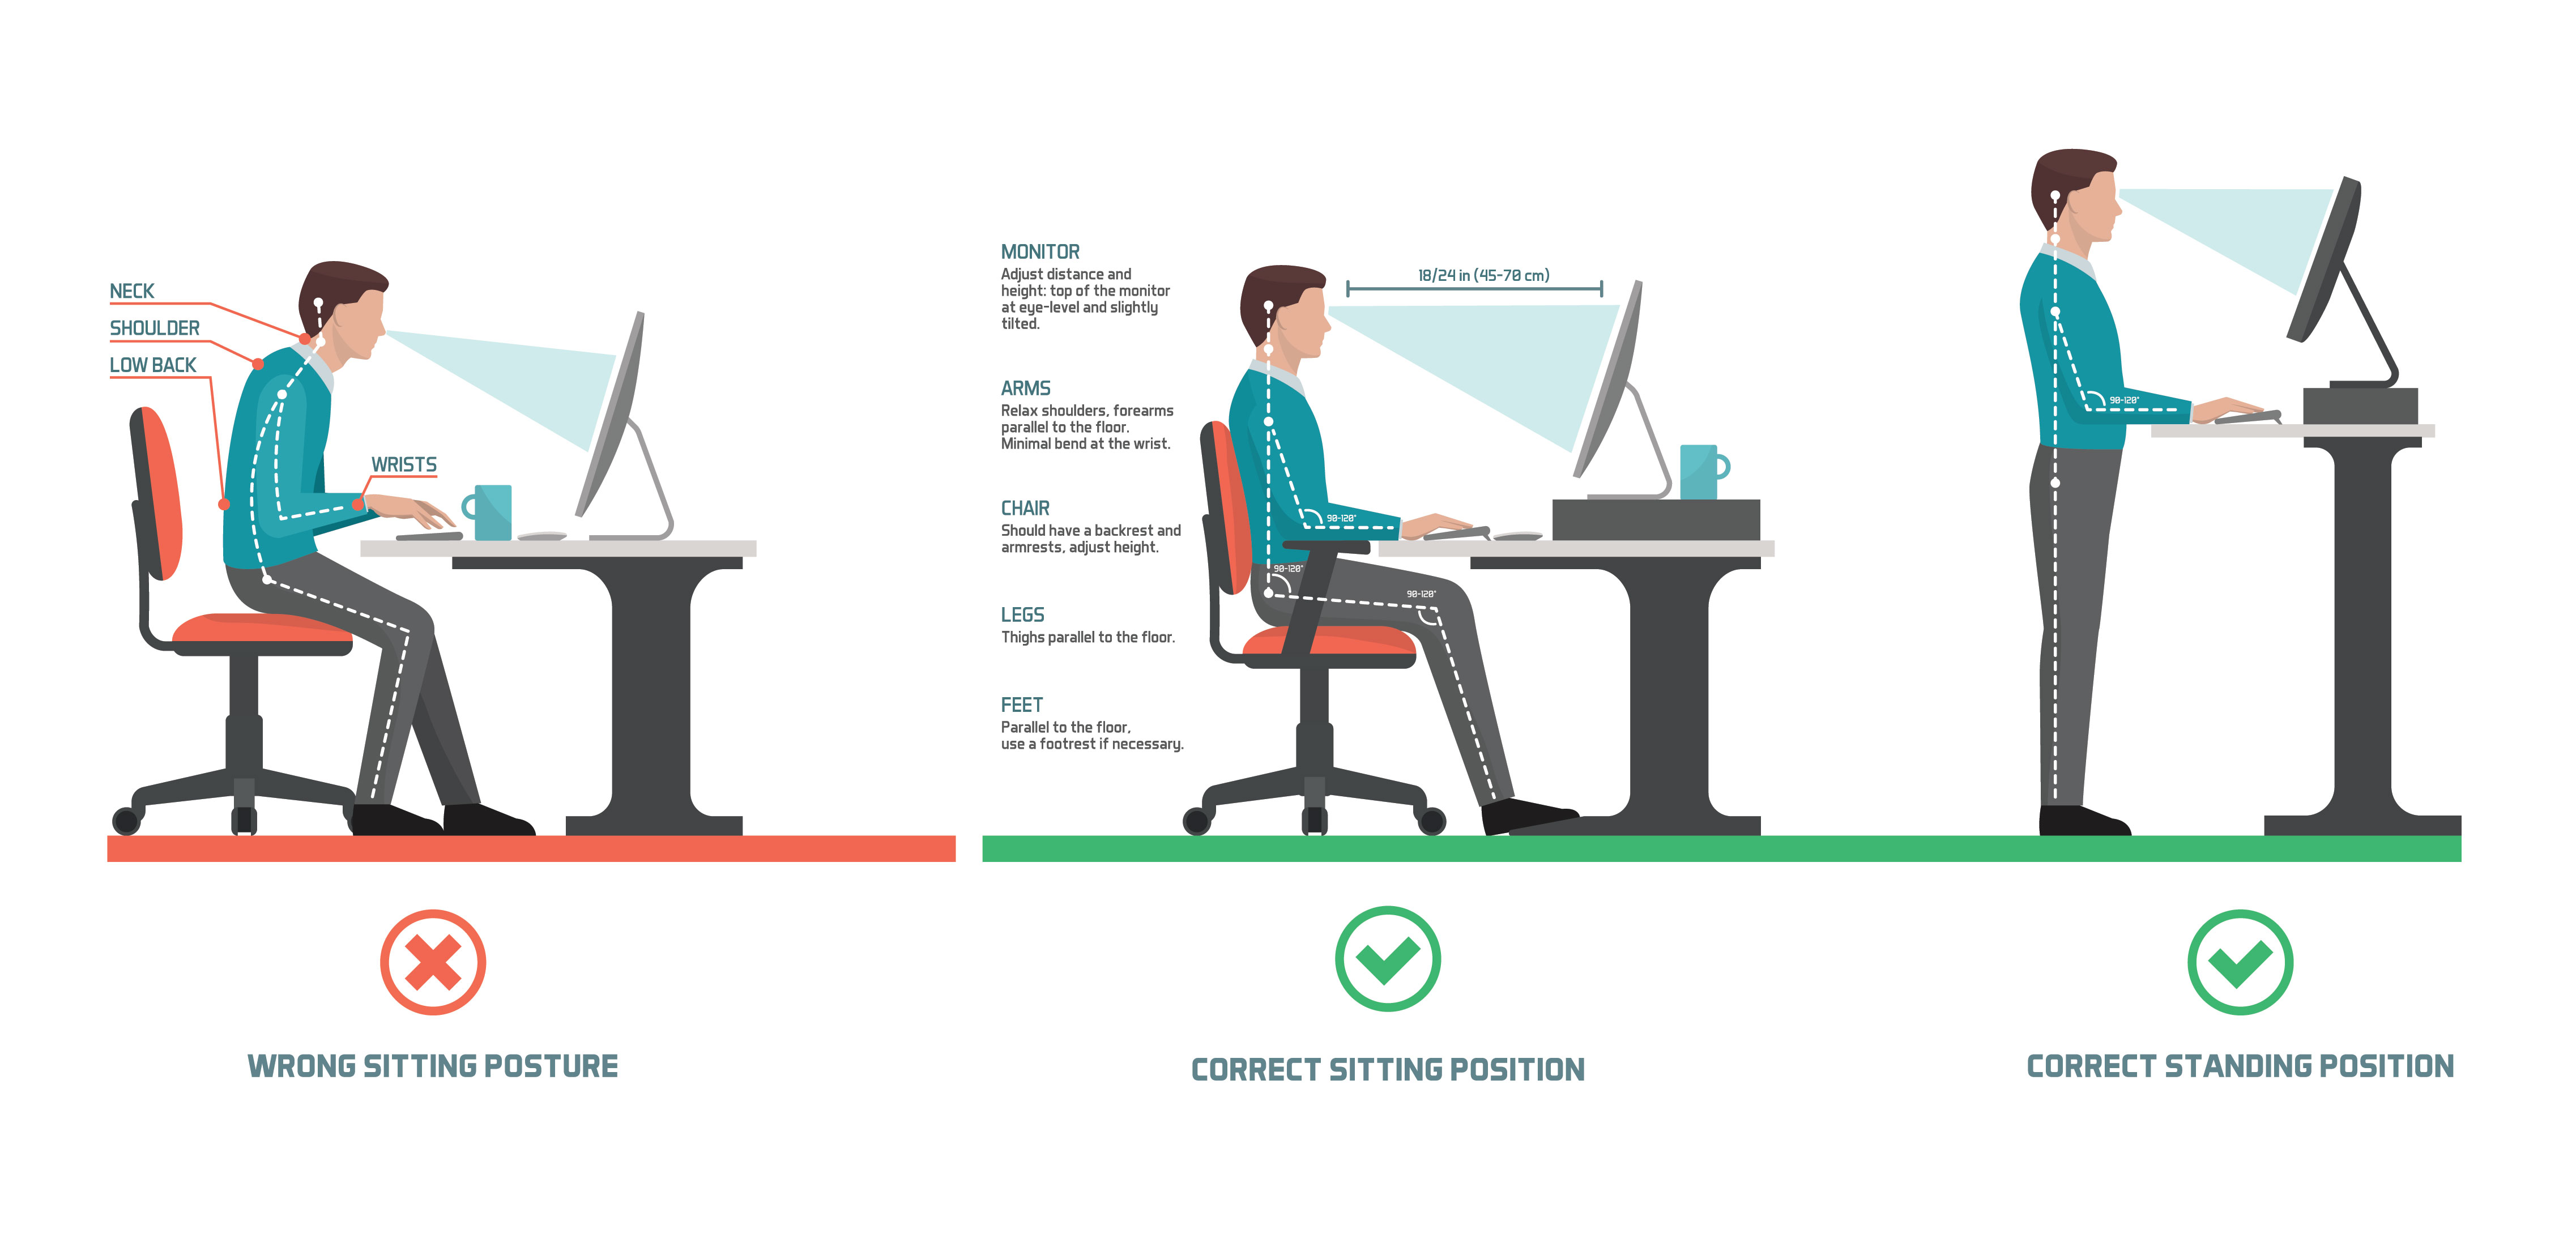 Alternate between sitting and standing every 30 minutes. Illustration by Elenabsl.